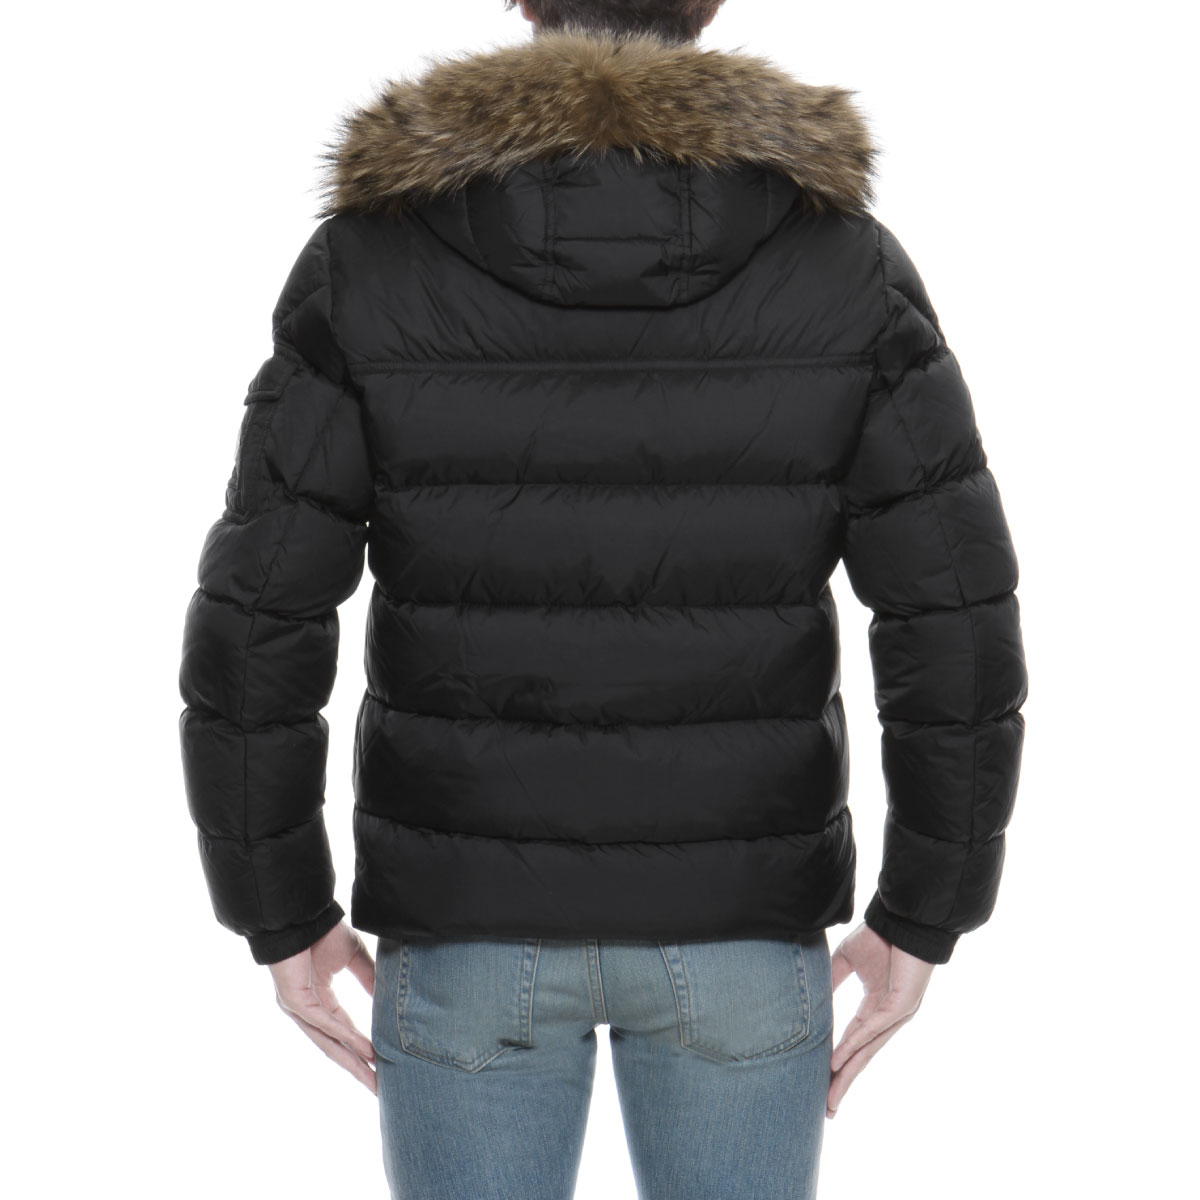 importshopdouble  Down jacket MARQUE mark BLACK black with Monk rail MONCLER  outer men MARQUE 53227 999 fur  amp  food   Rakuten Global Market 8169bdd53ca